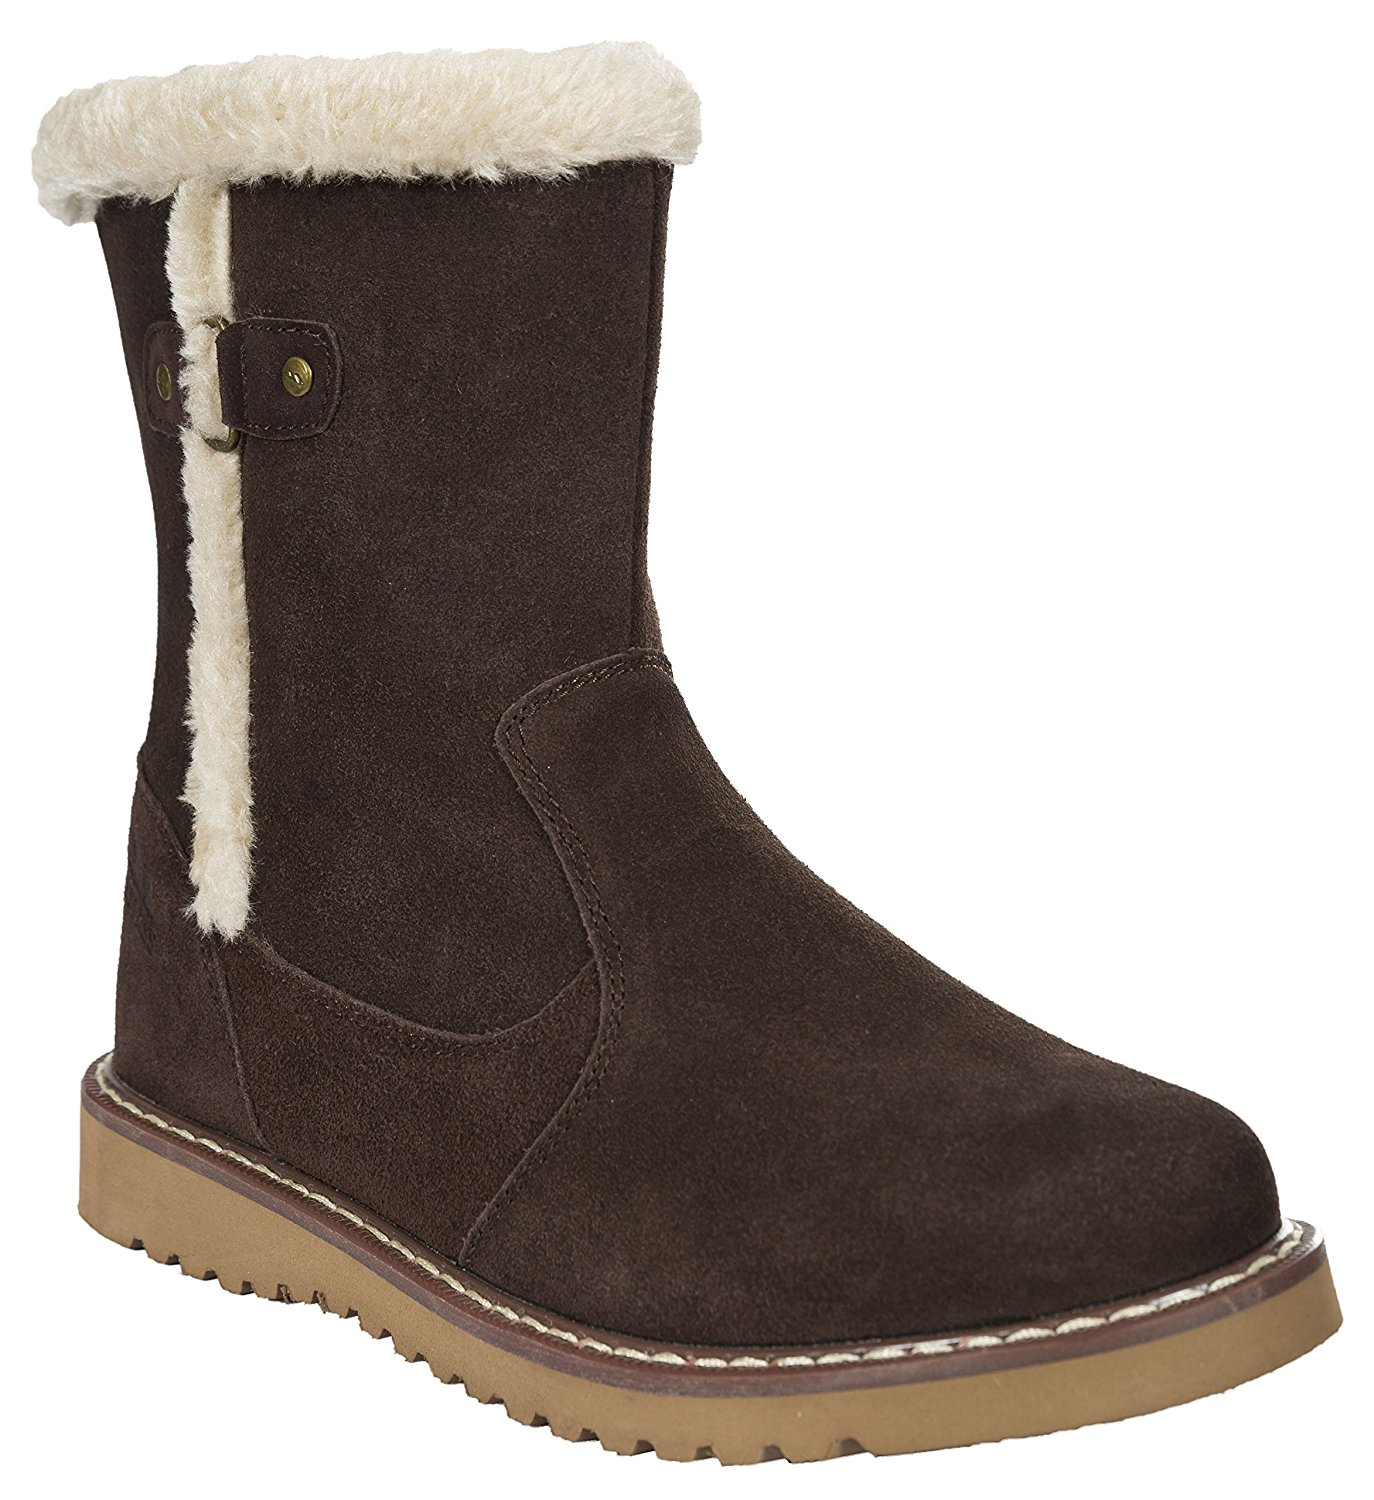 Trespass womens Trespass Womens/Ladies Lockwood Faux Fur Lined Suede Winter Snow Boots Suede